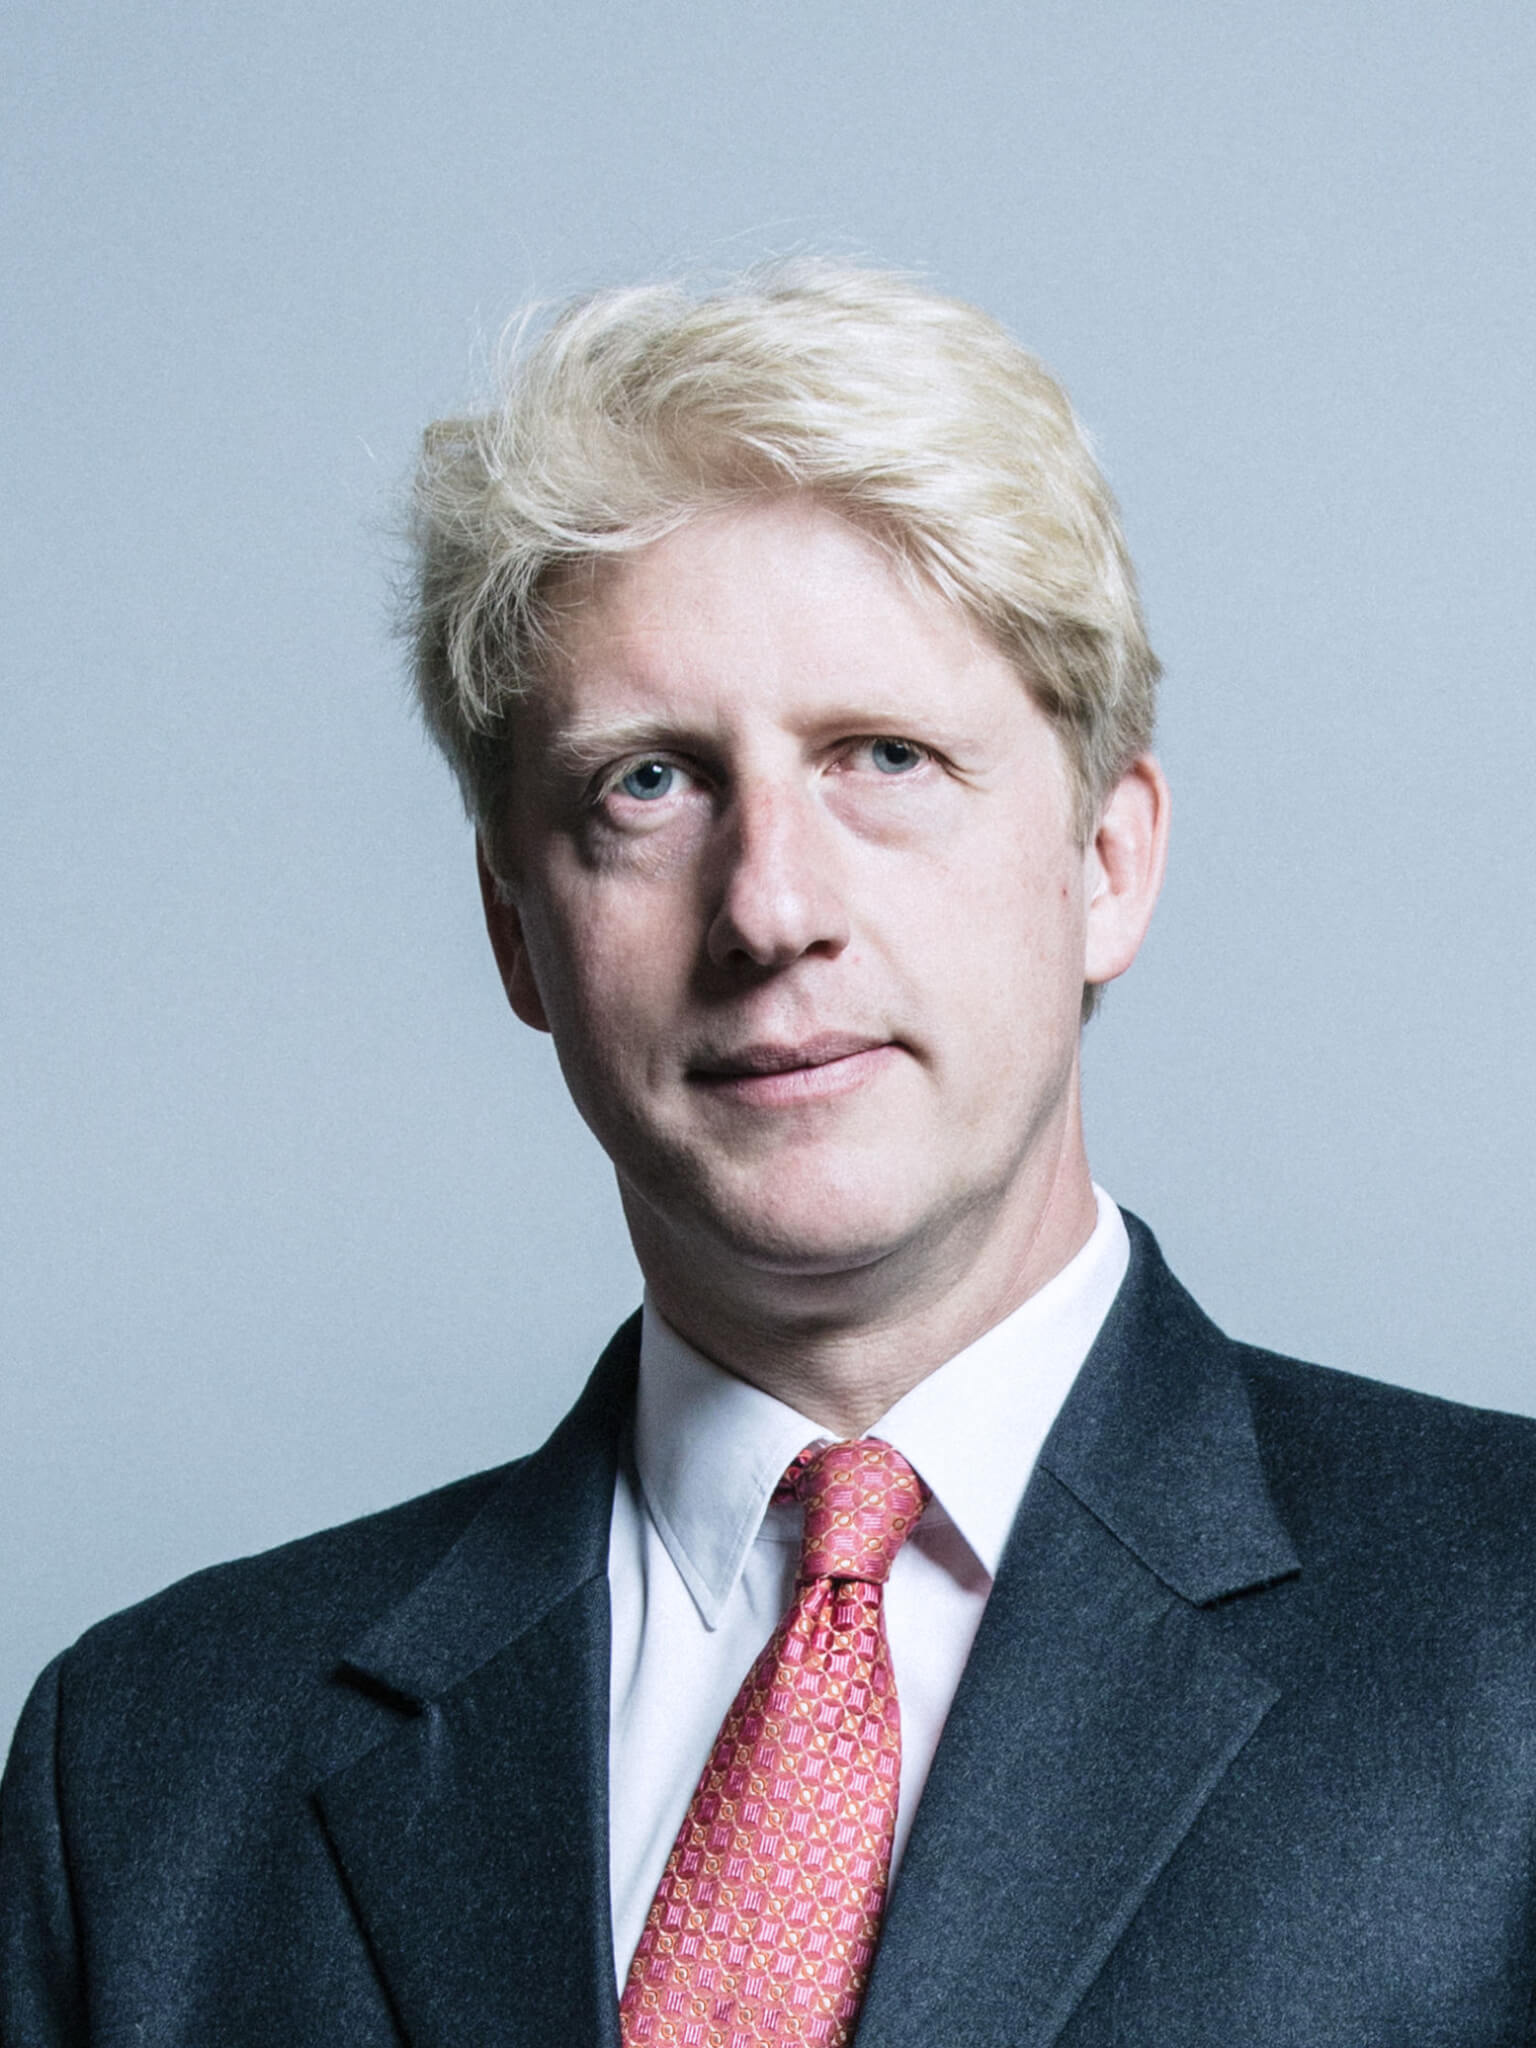 Jo Johnson-Head and Shoulders